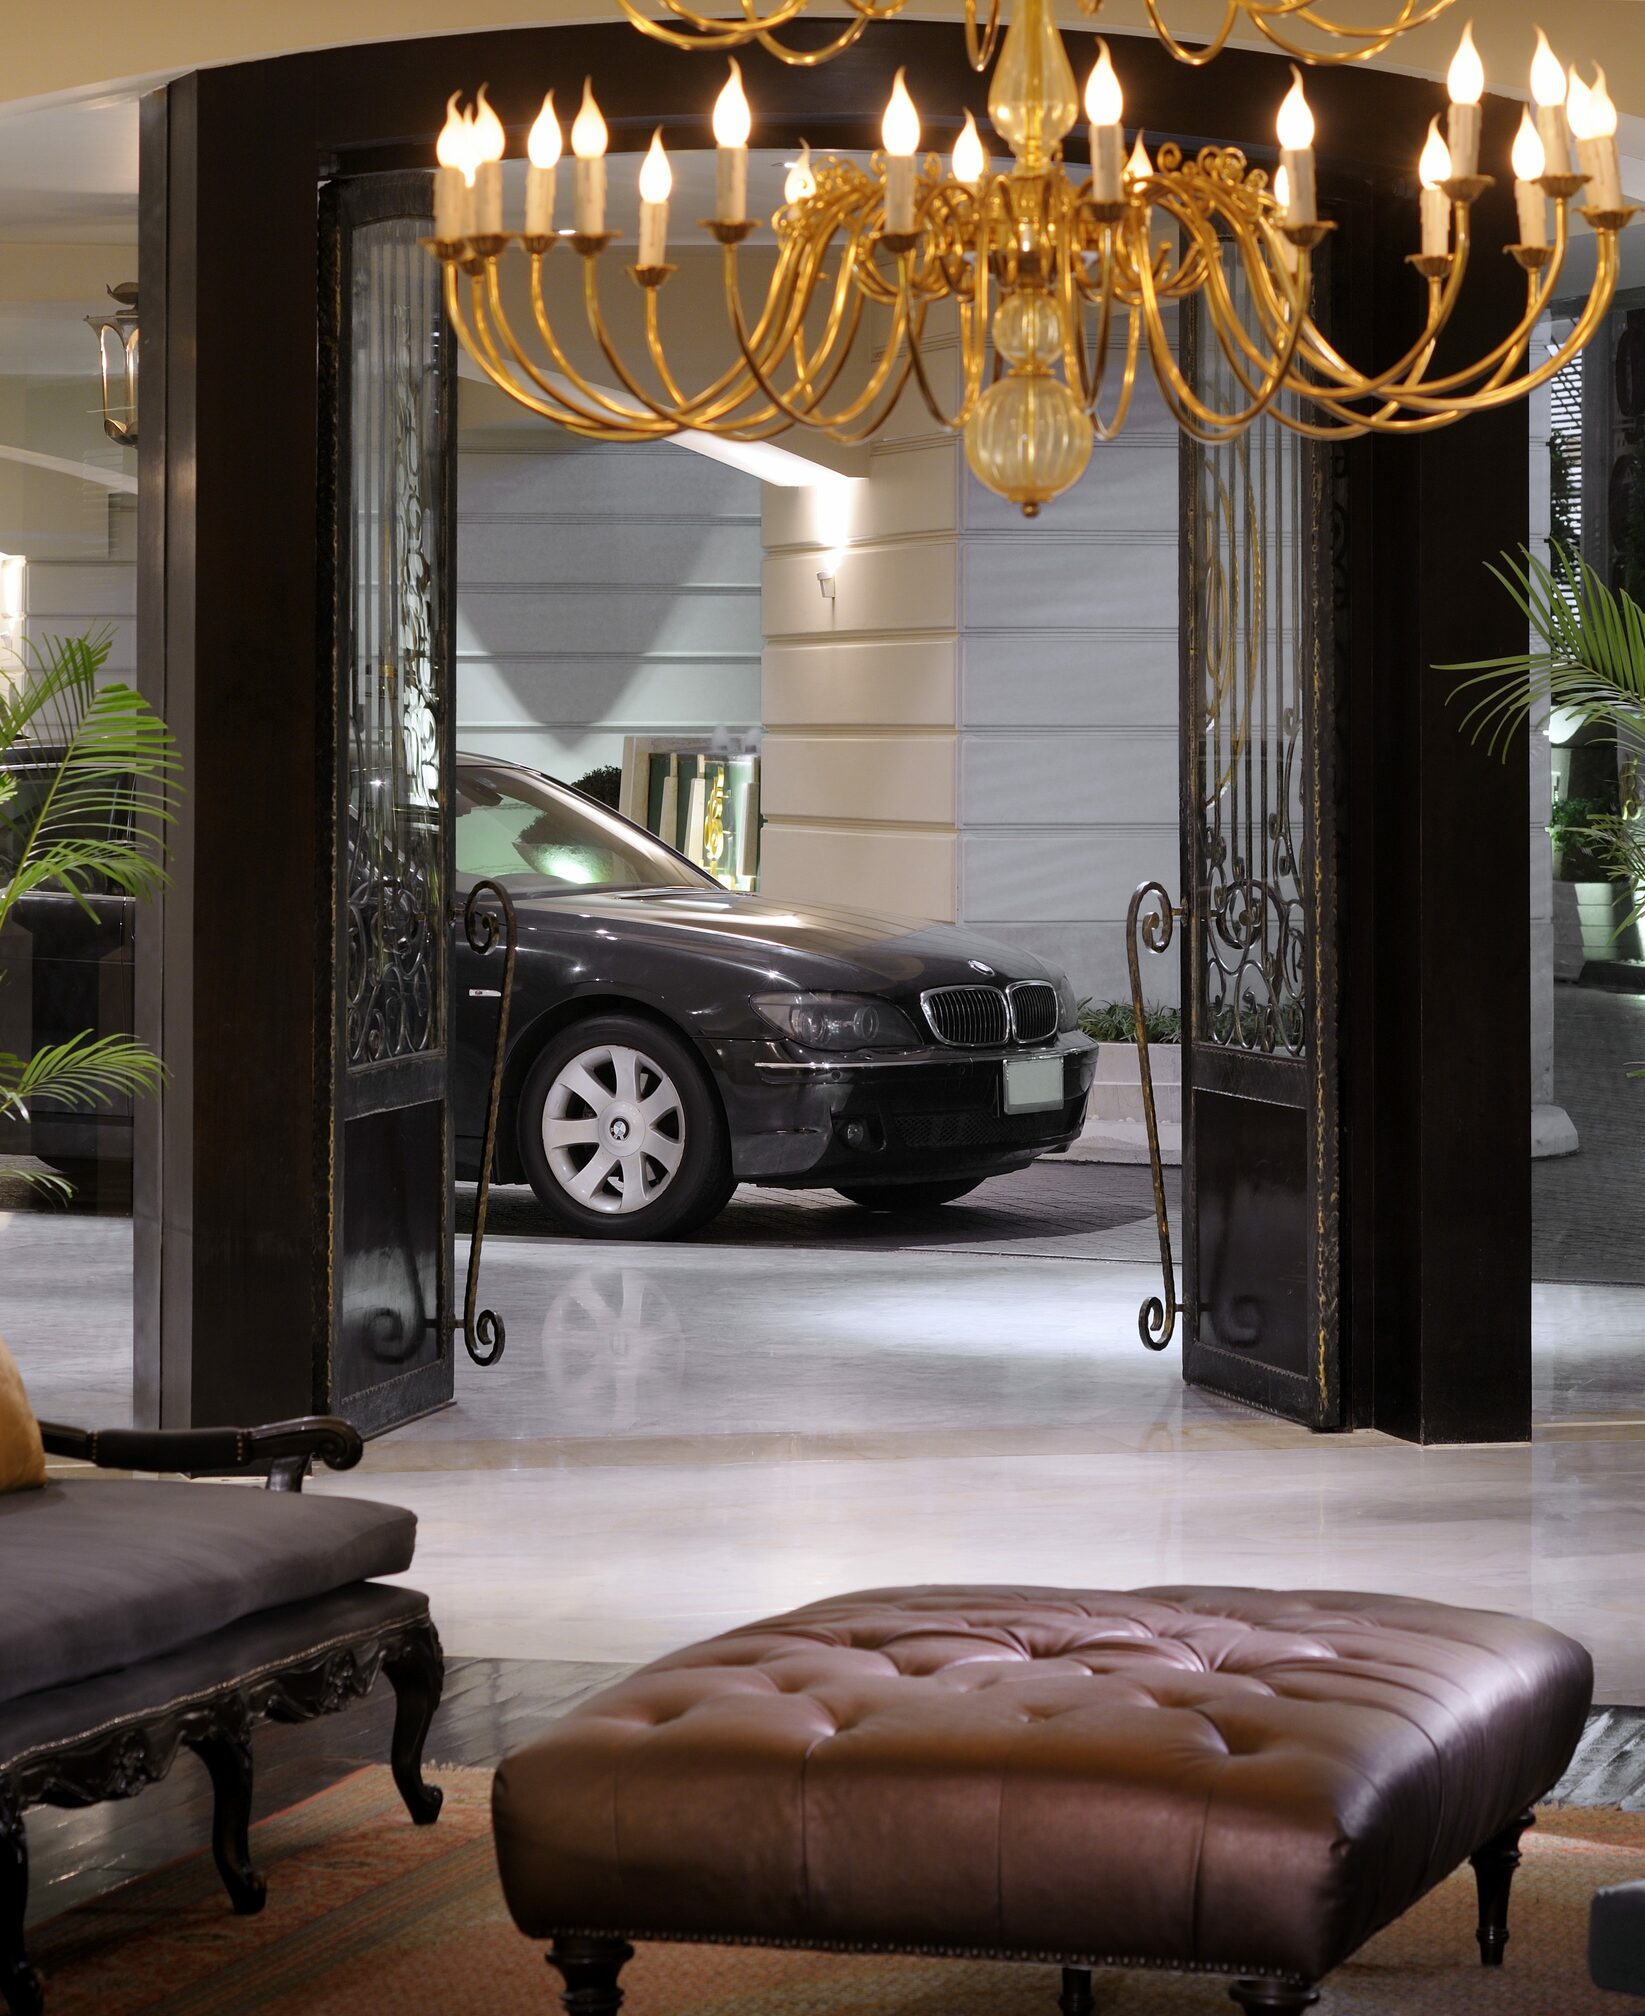 Hotel lobby with couch and car in the back